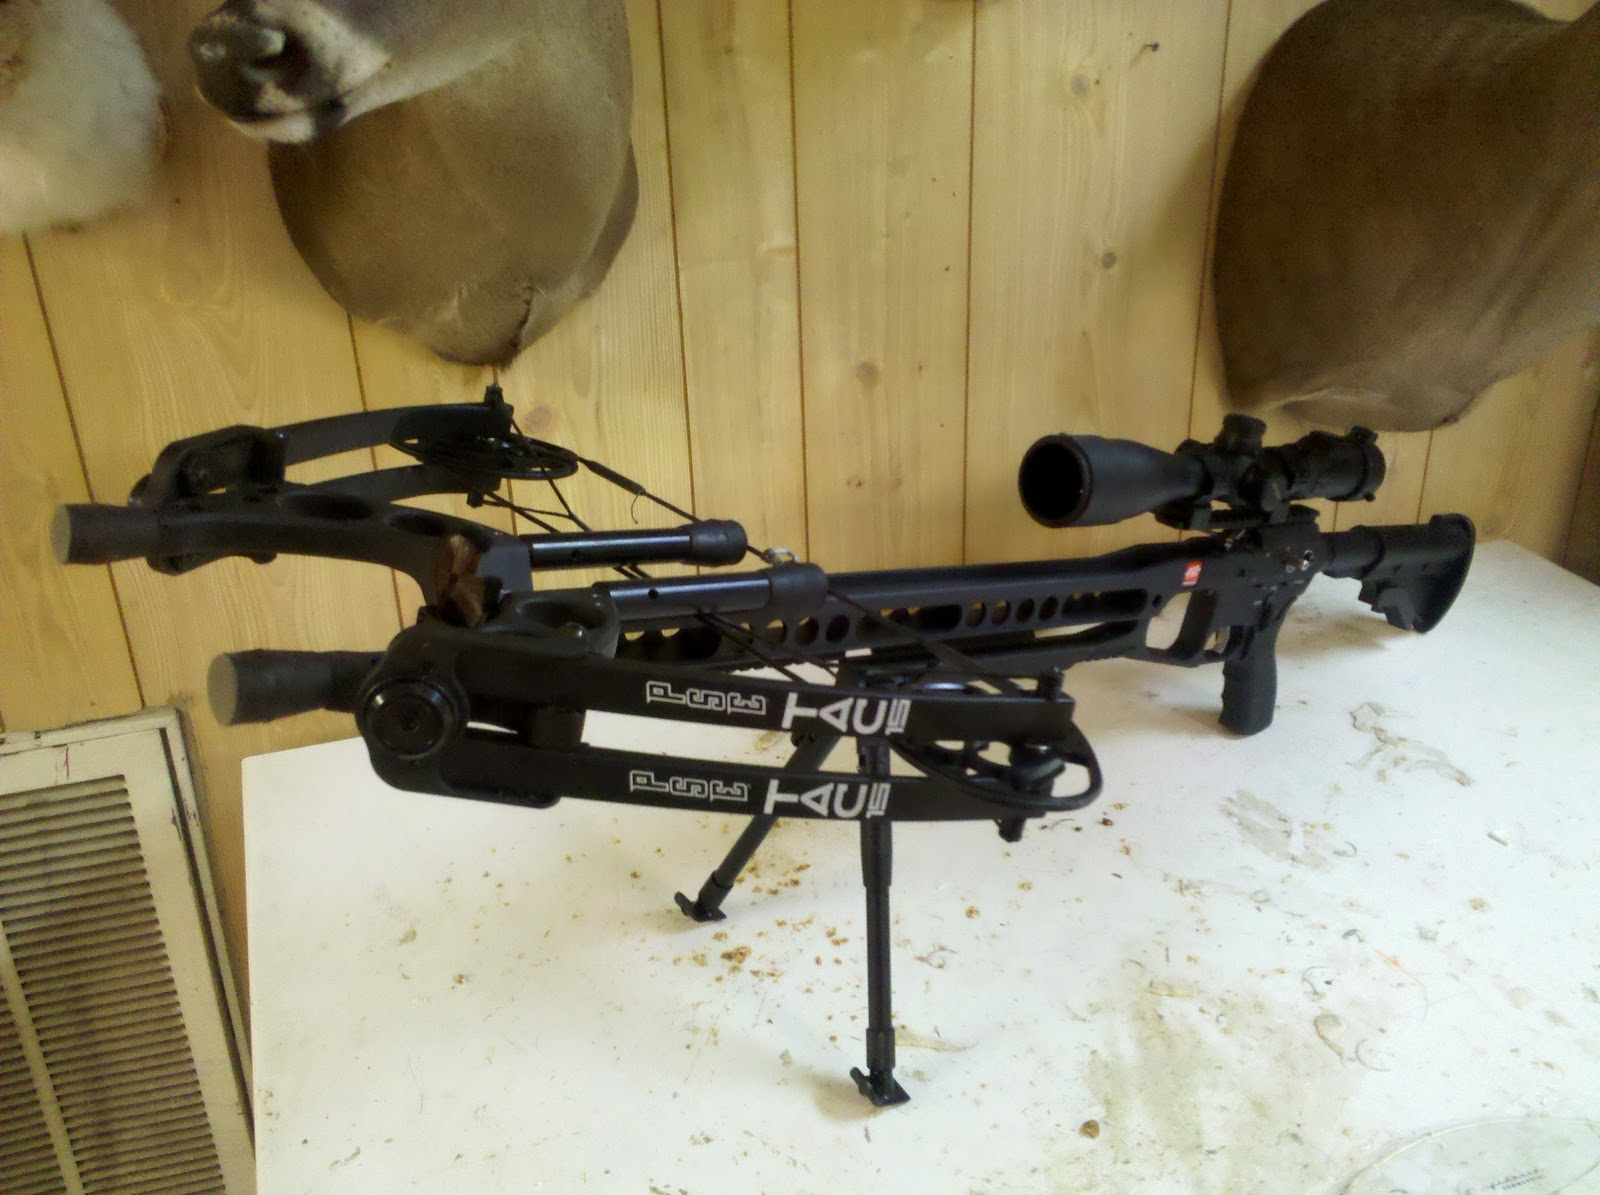 TAC 15 http://704outdoors.com/playing-with-the-pse-tac-15-crossbow/